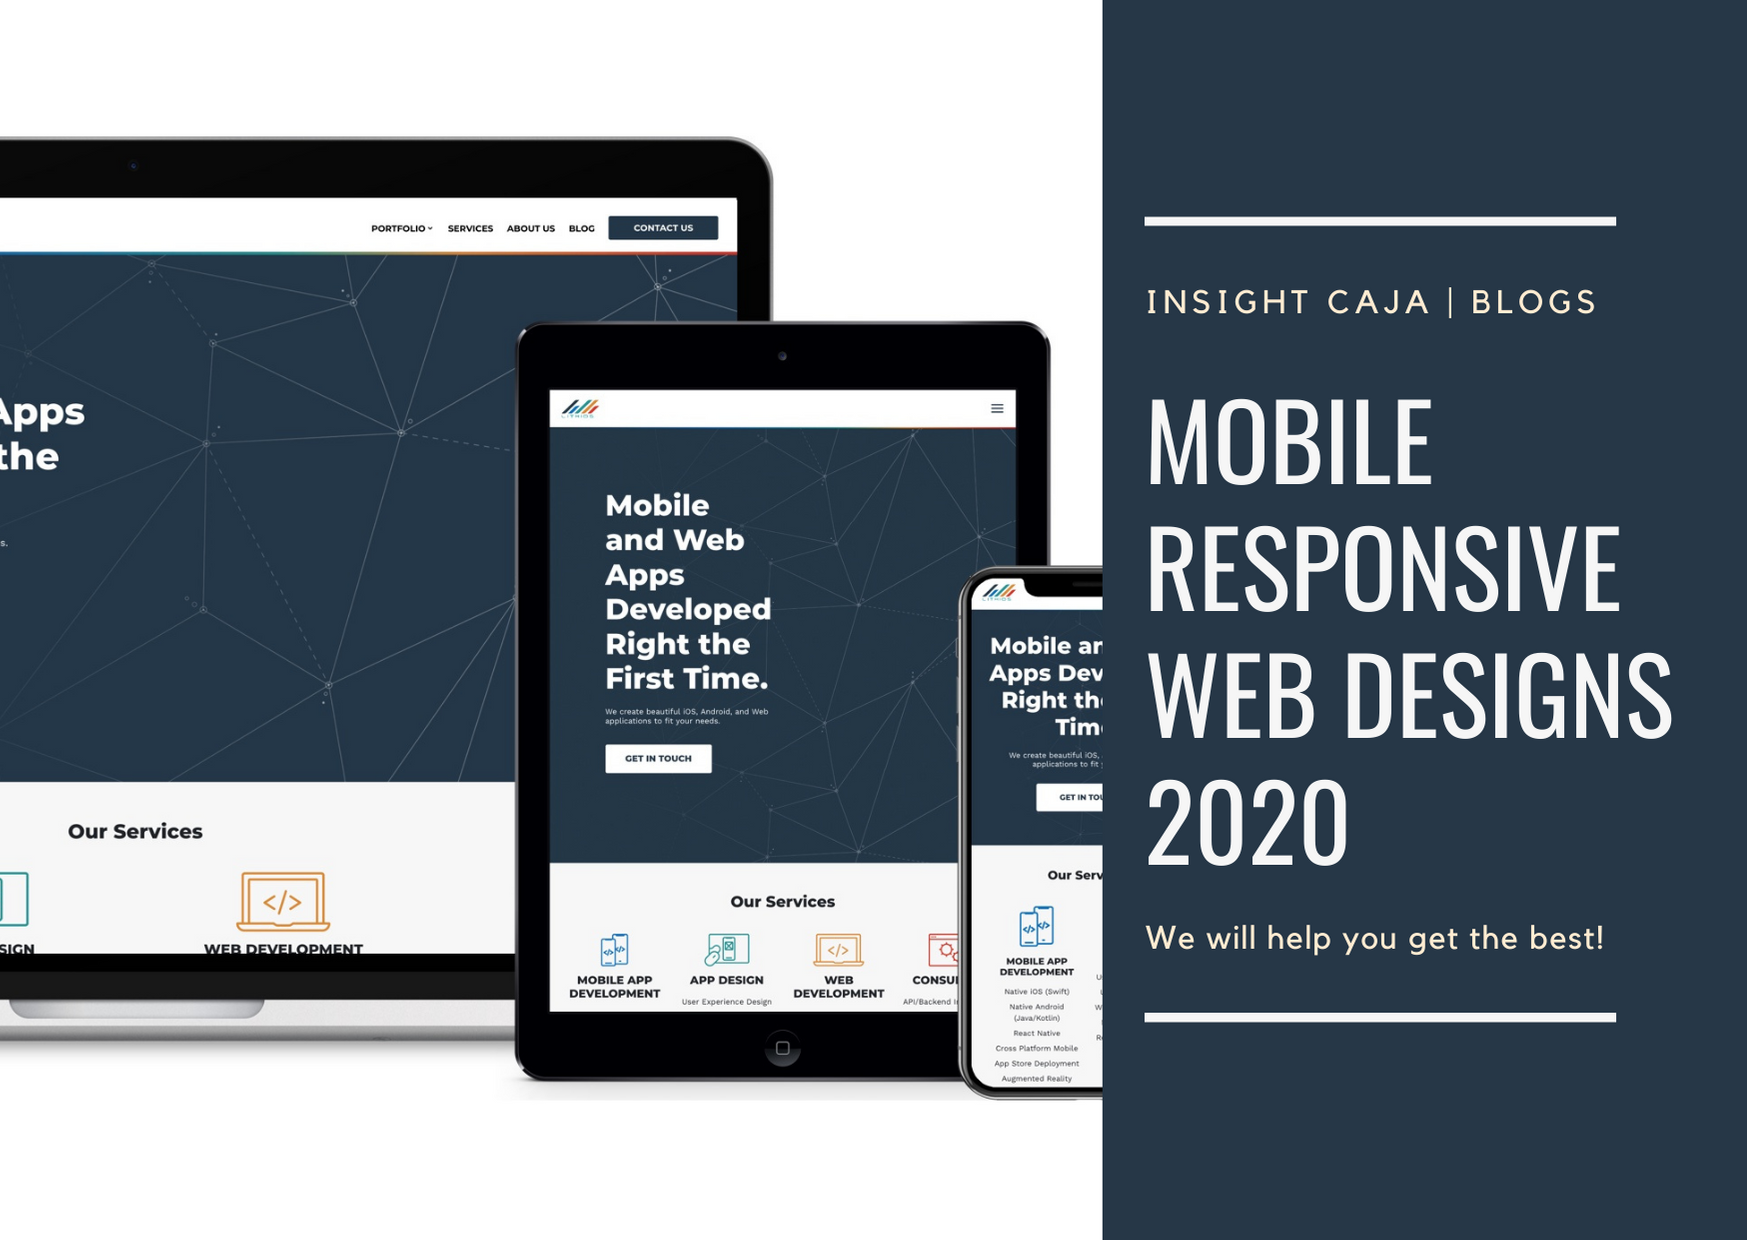 Top 10 Mobile Responsive Web Designs Features in 2020